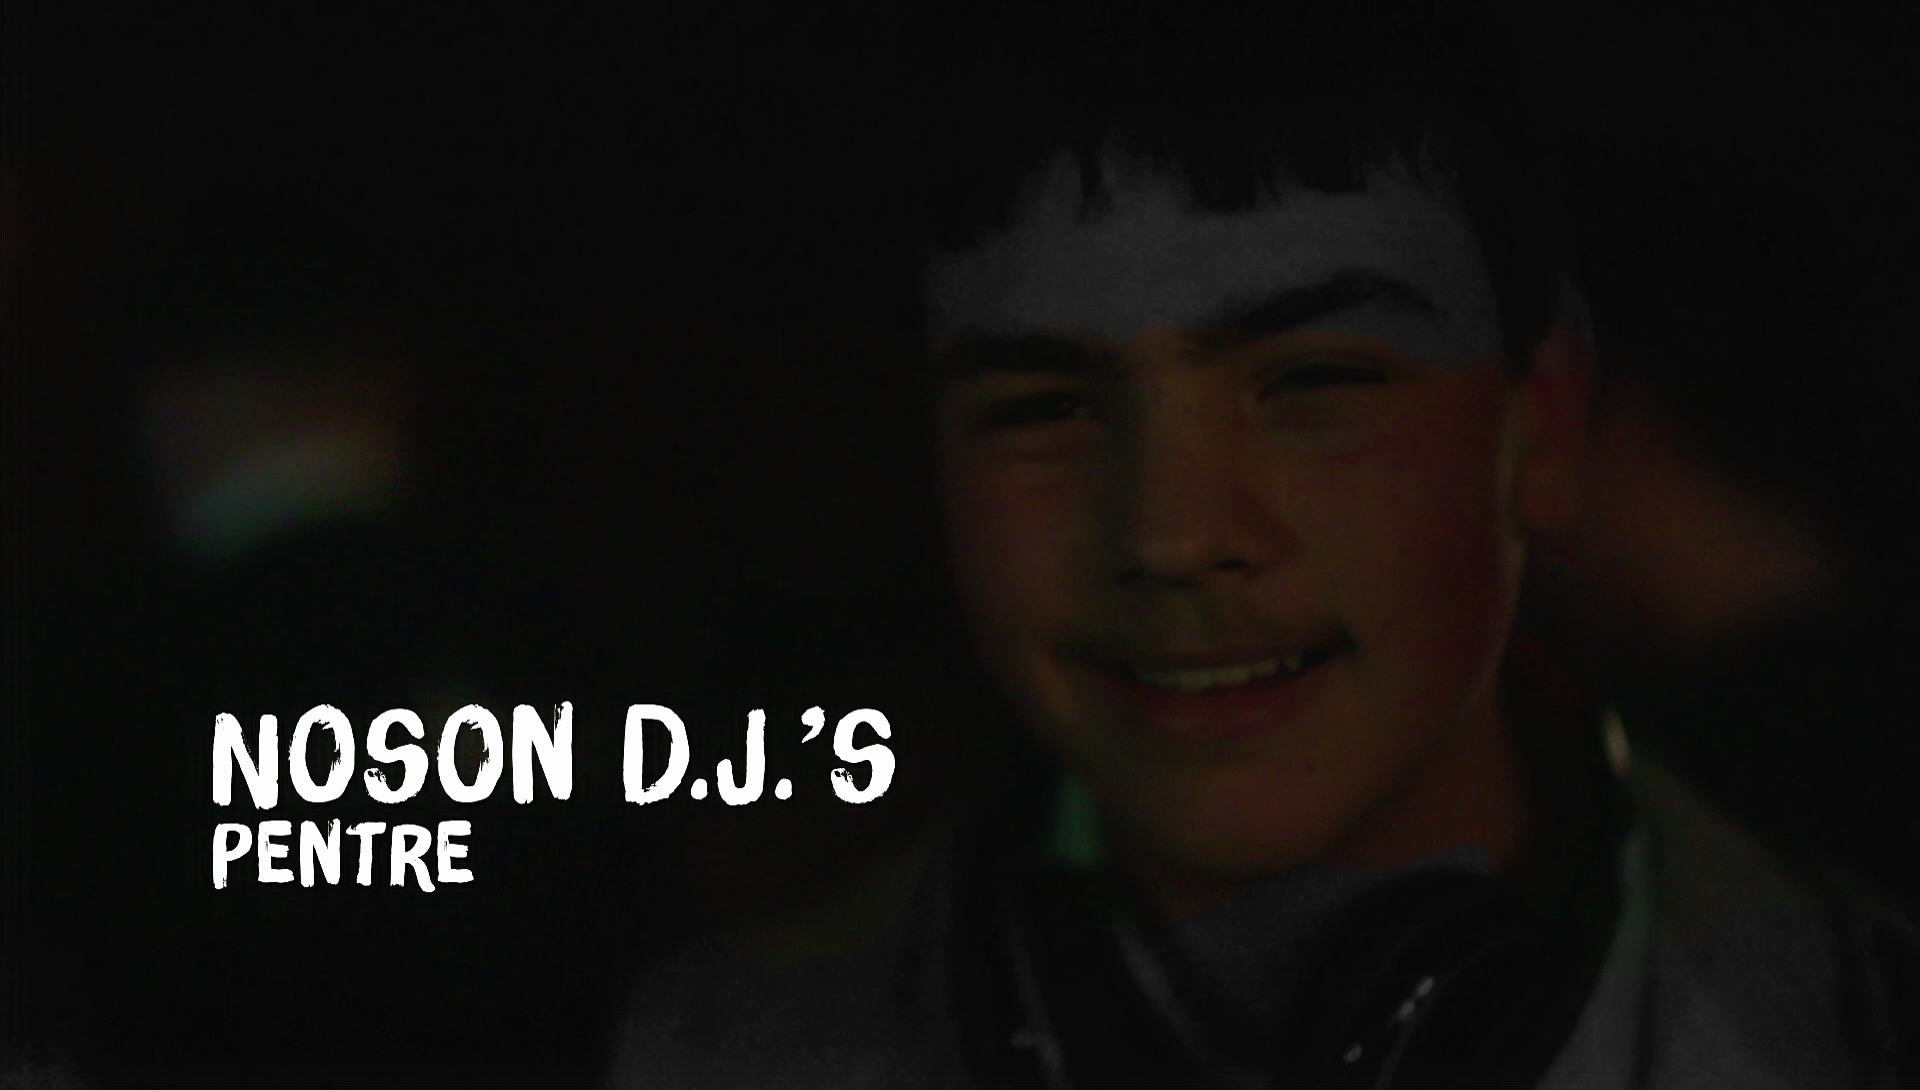 D.J Dibble - D.J's Night, Pentre